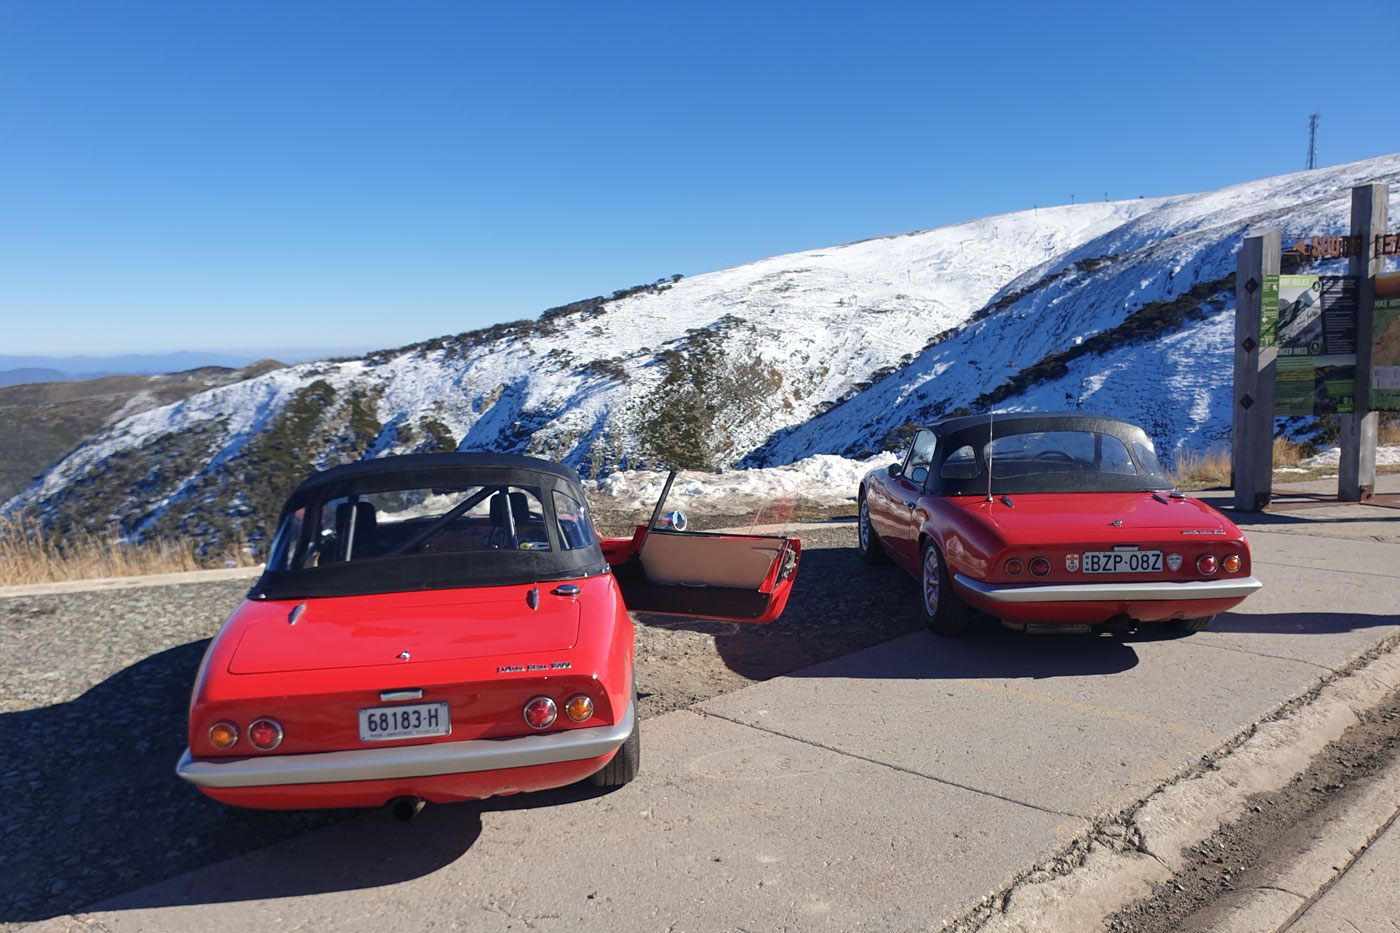 The Top of Mount Hotham